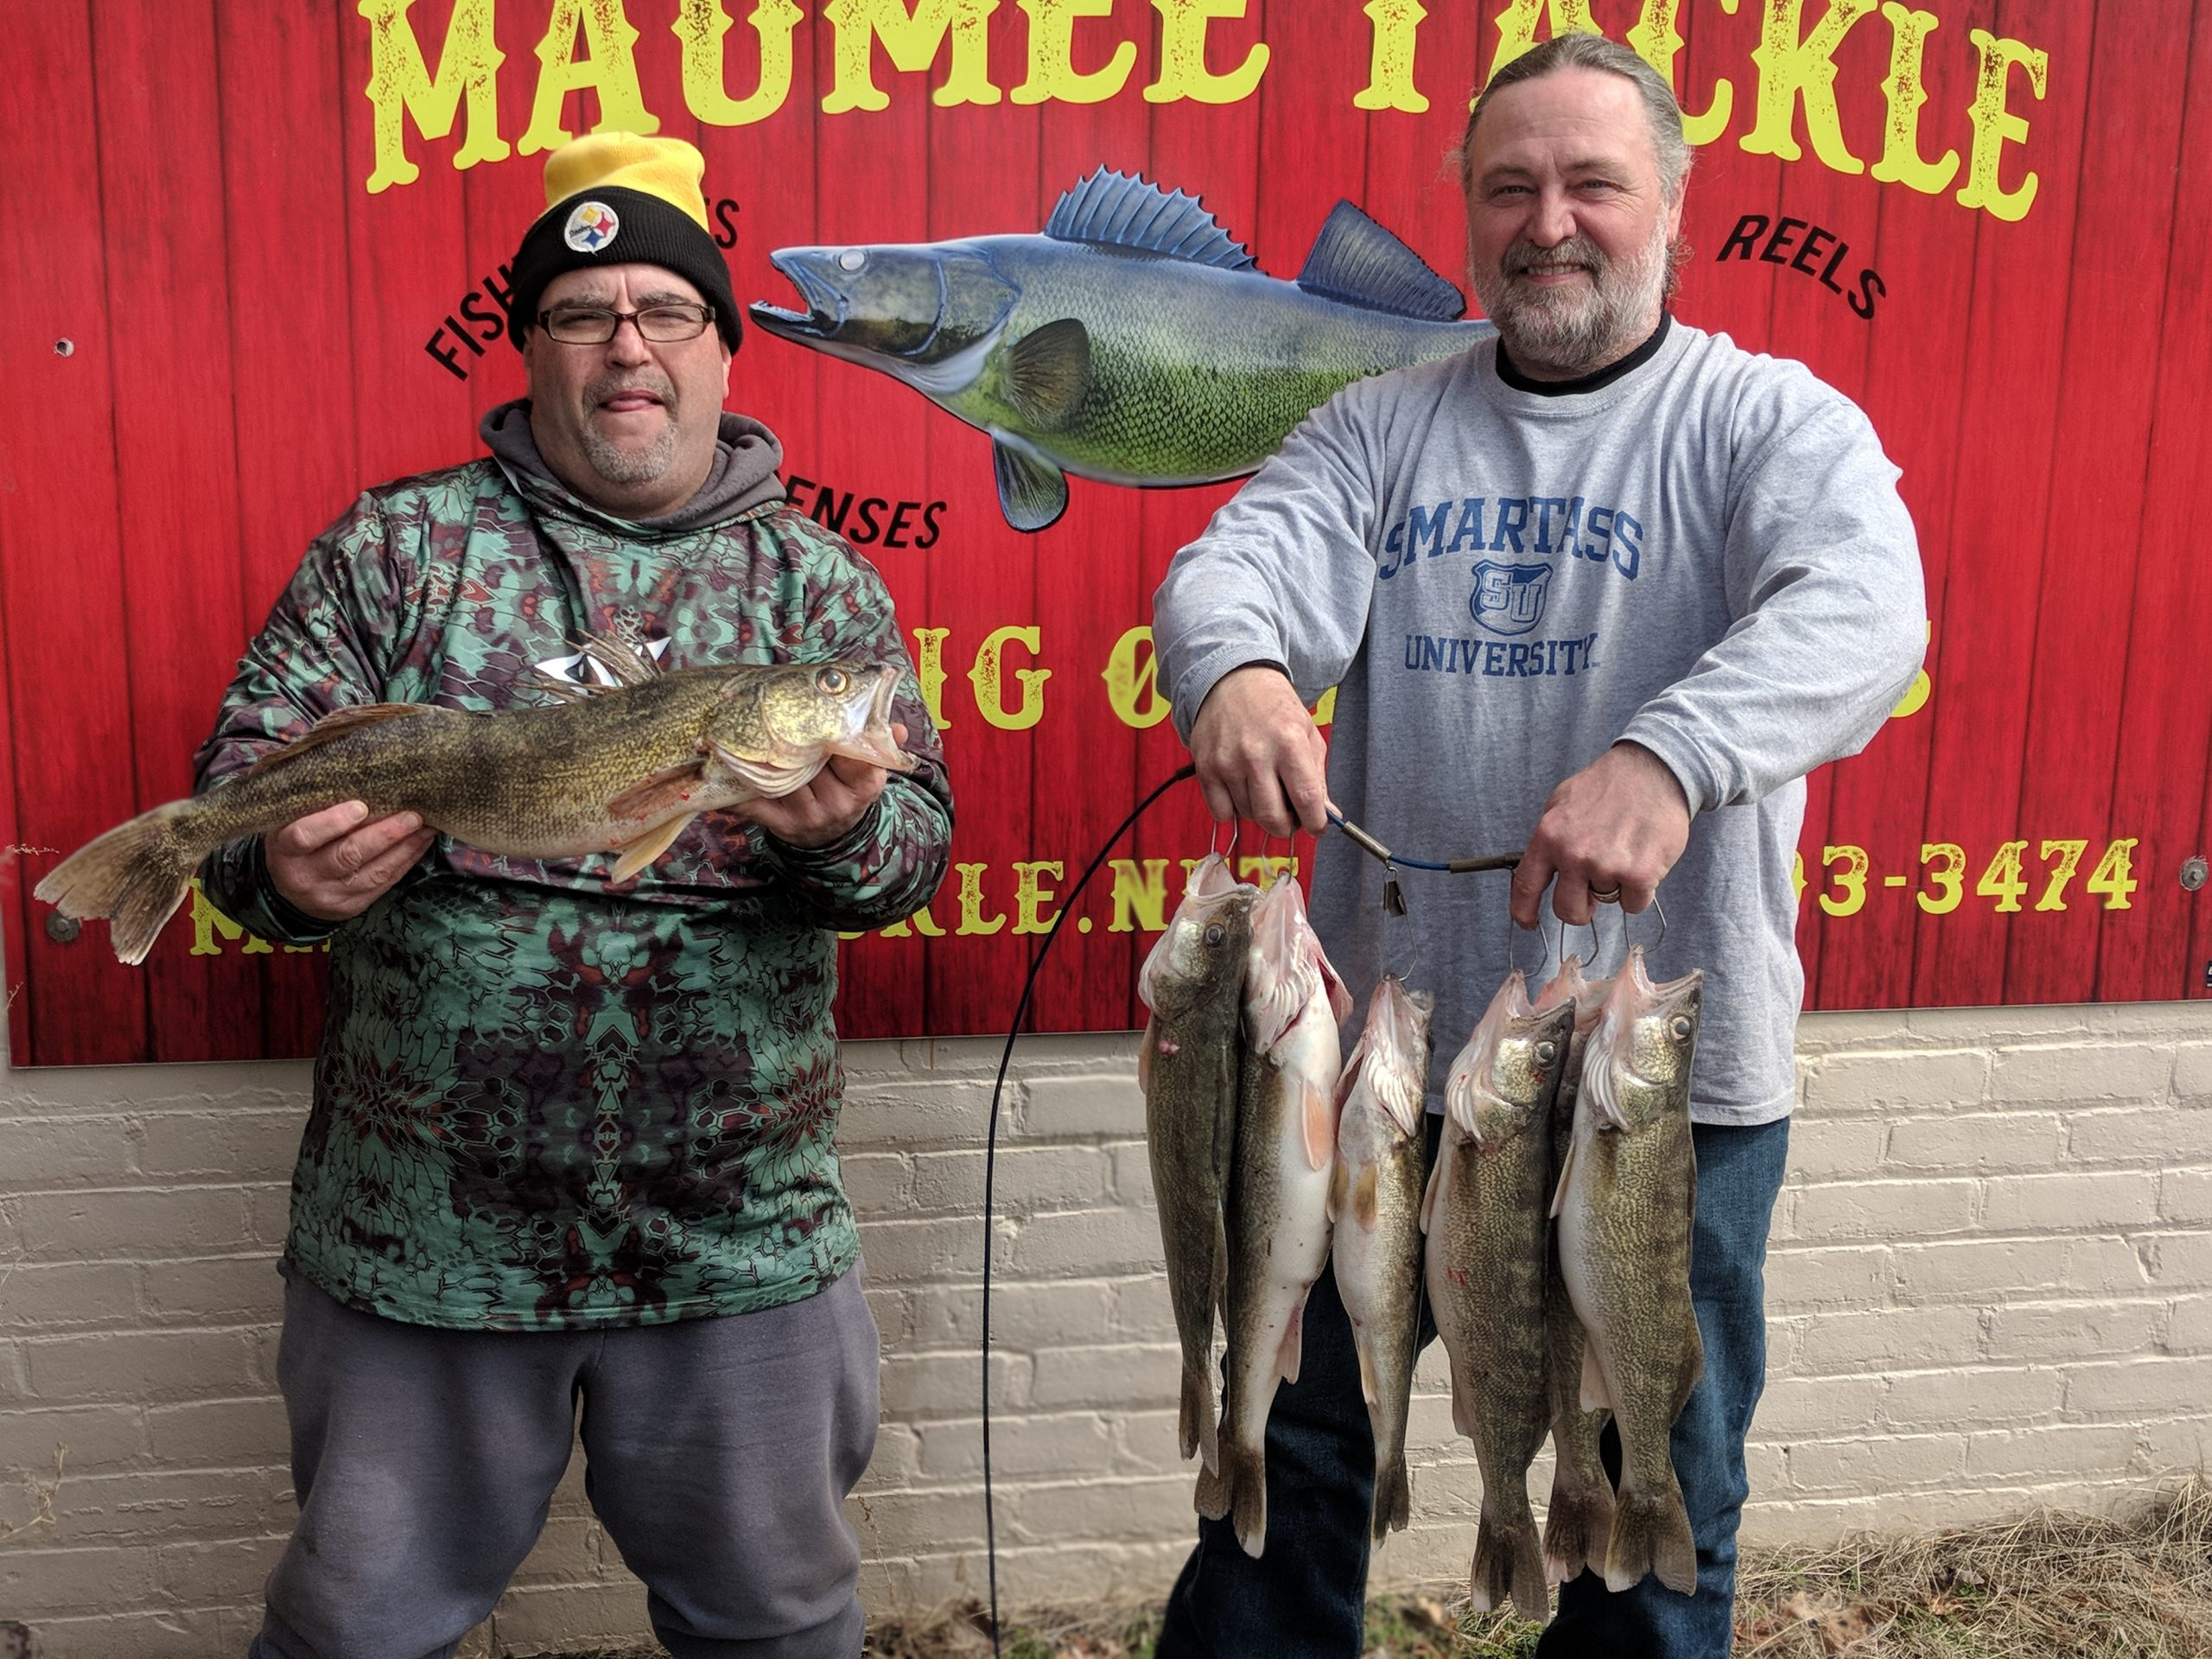 Maumee river report-17 march 2020- Enjoy your day cause life is good